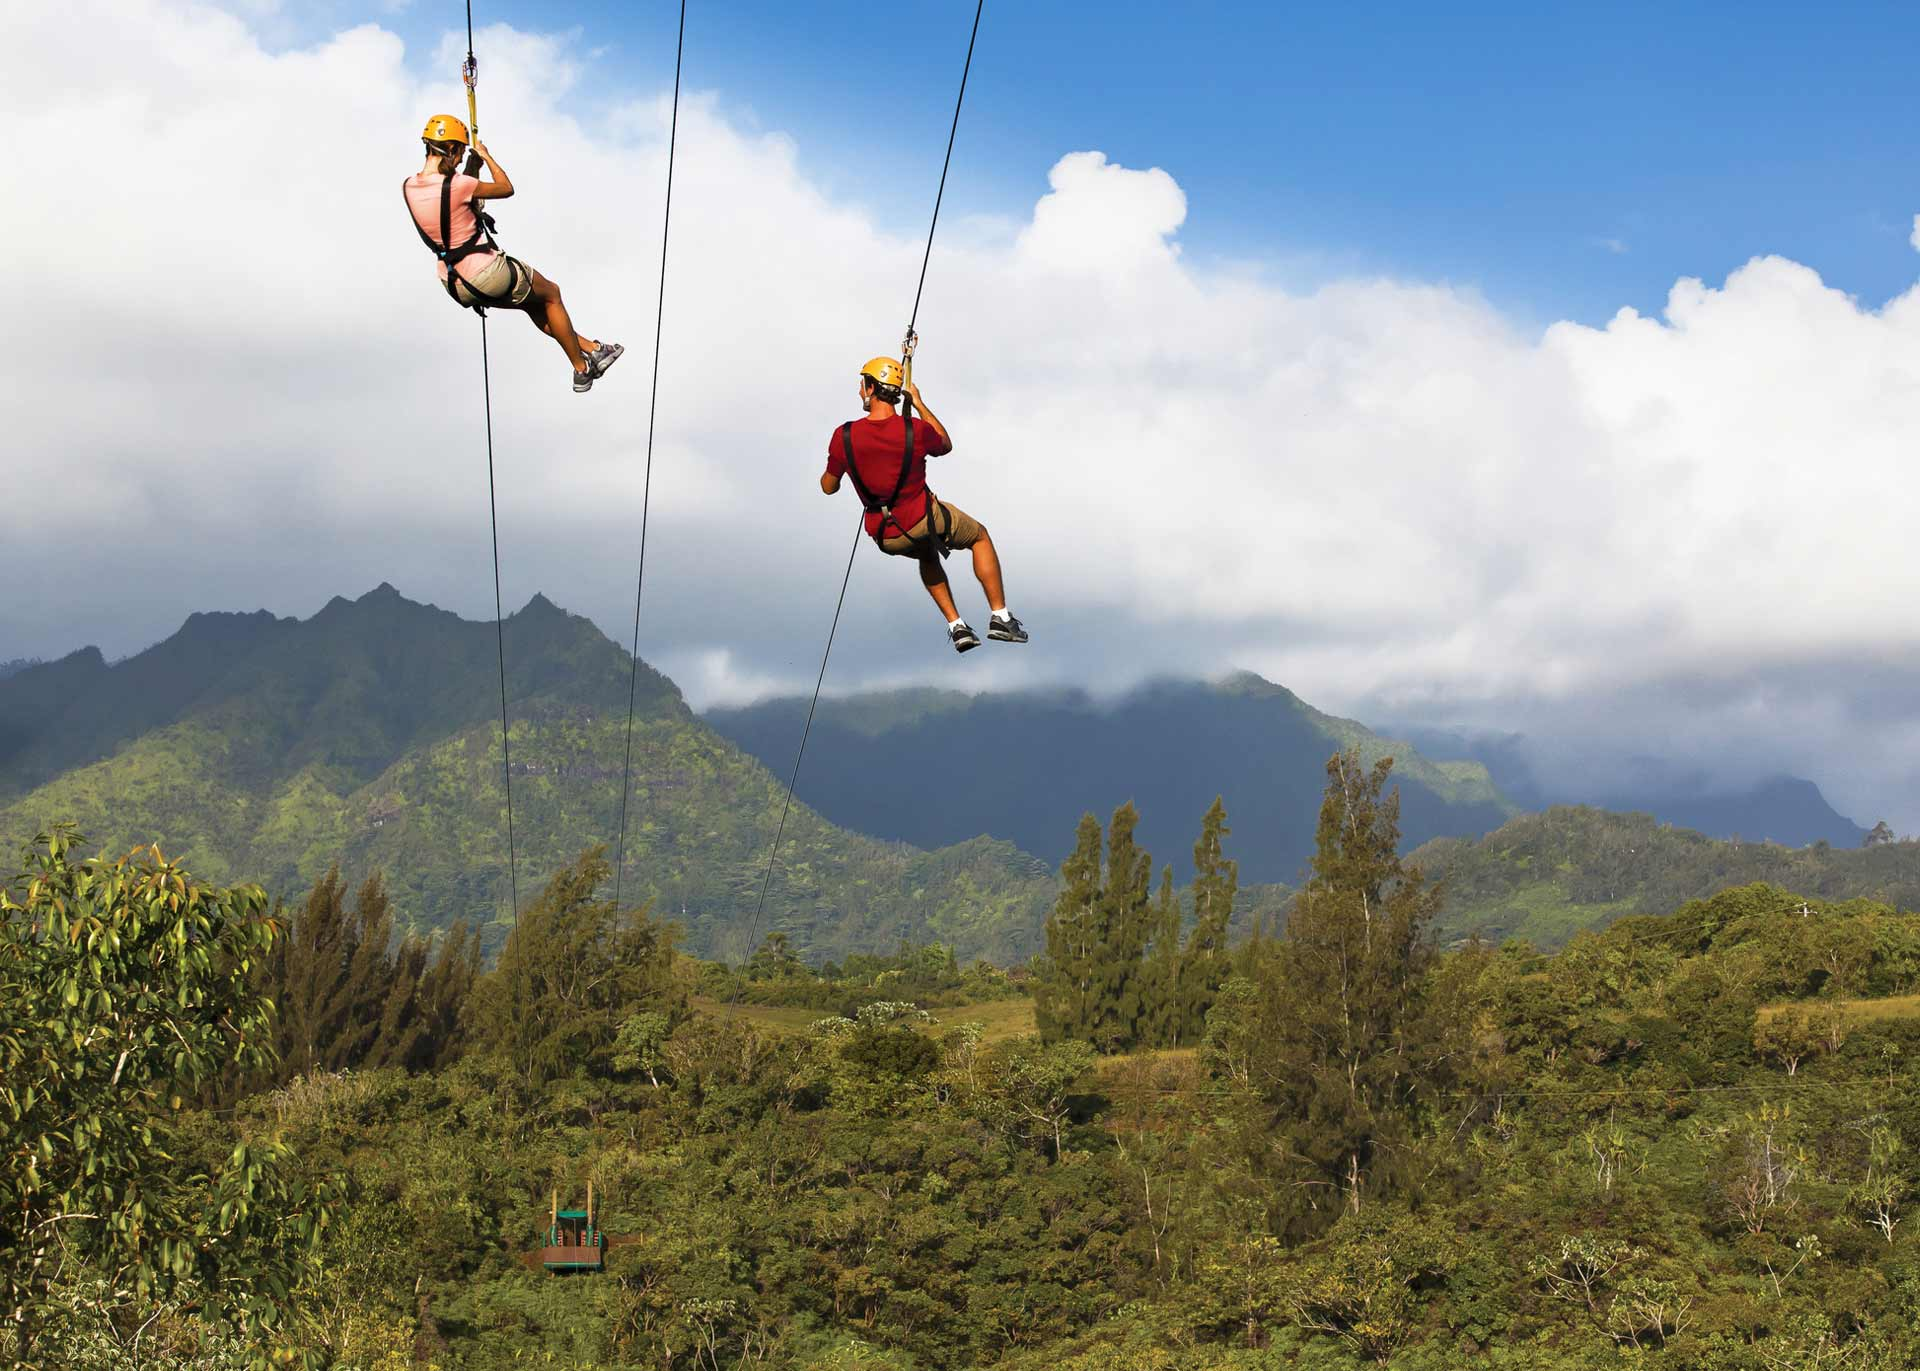 two person riding on zipline above forest during daytime